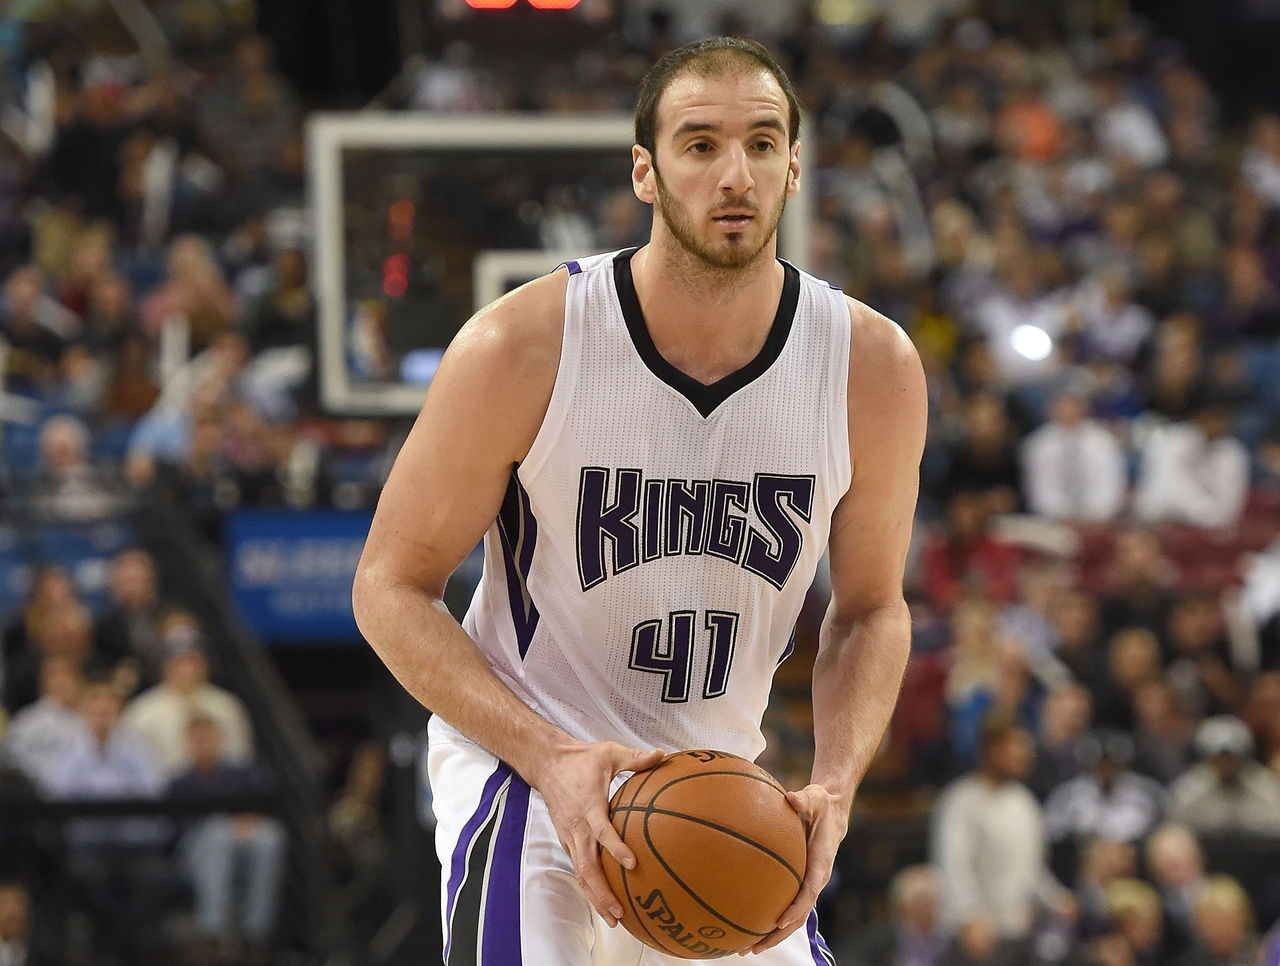 NBA Trend Of The Day: The Sacramento Kings Without